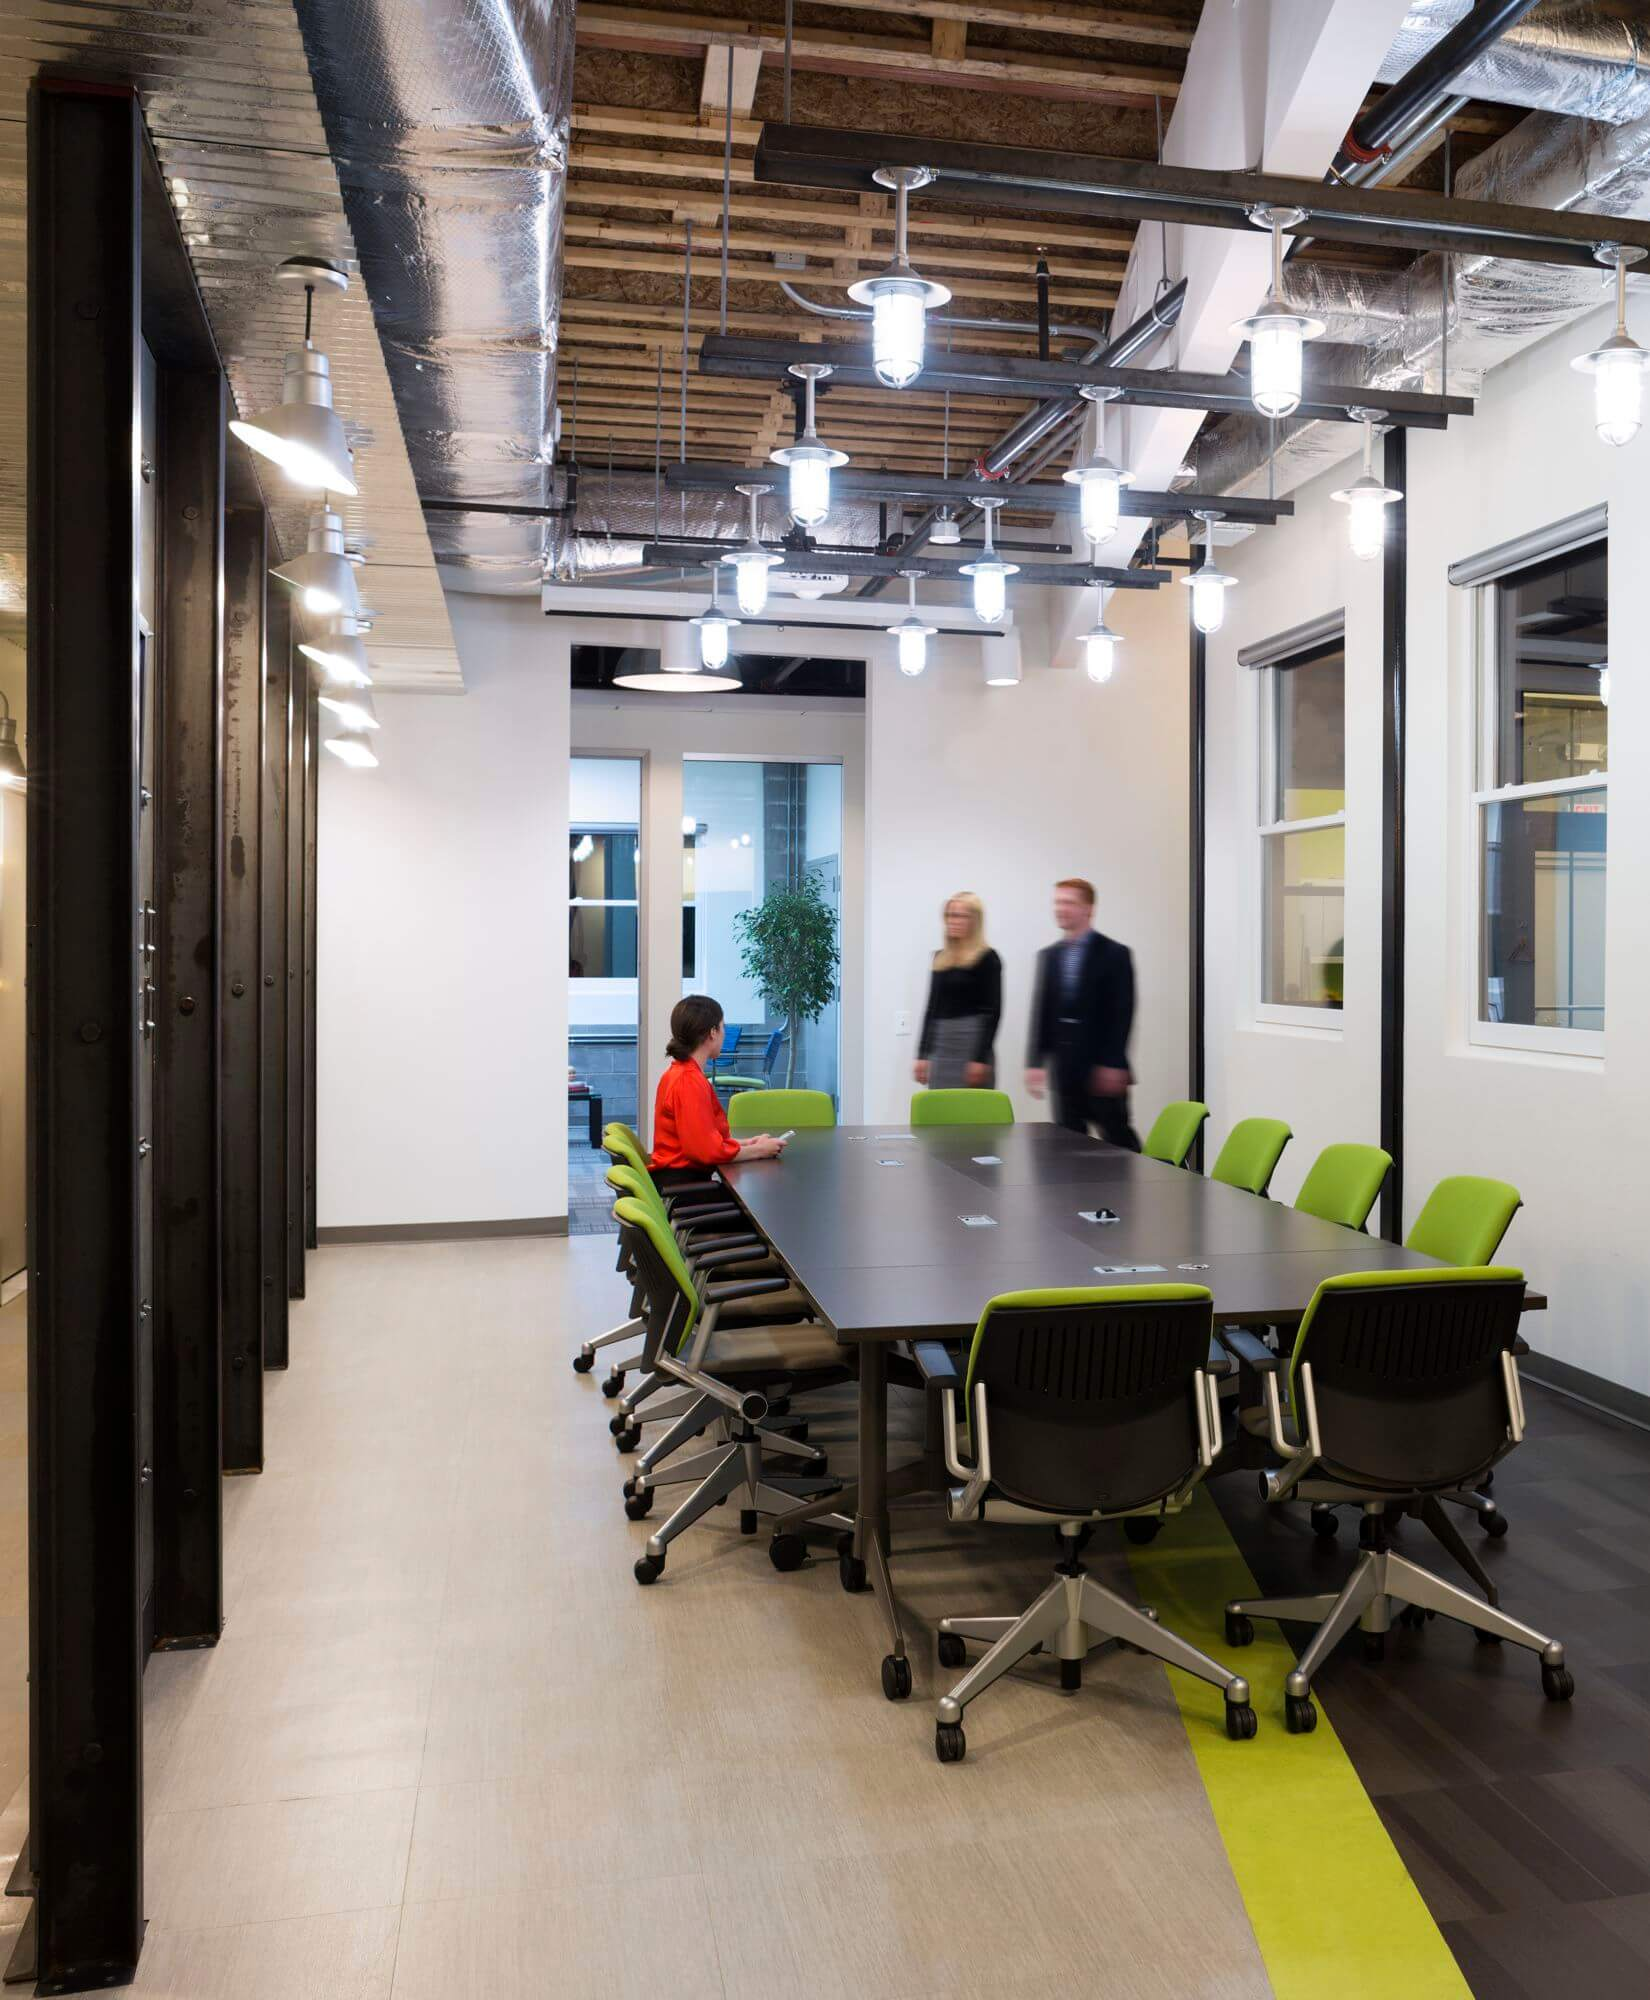 The fourth floor represents the future of American manufacturing, incorporating bright green elements to reflect a sustainable economy.  Steel was used to create custom pendant lighting in the primary meeting space, while sprinkler pipes support the cantilevered quartz coffee bar.